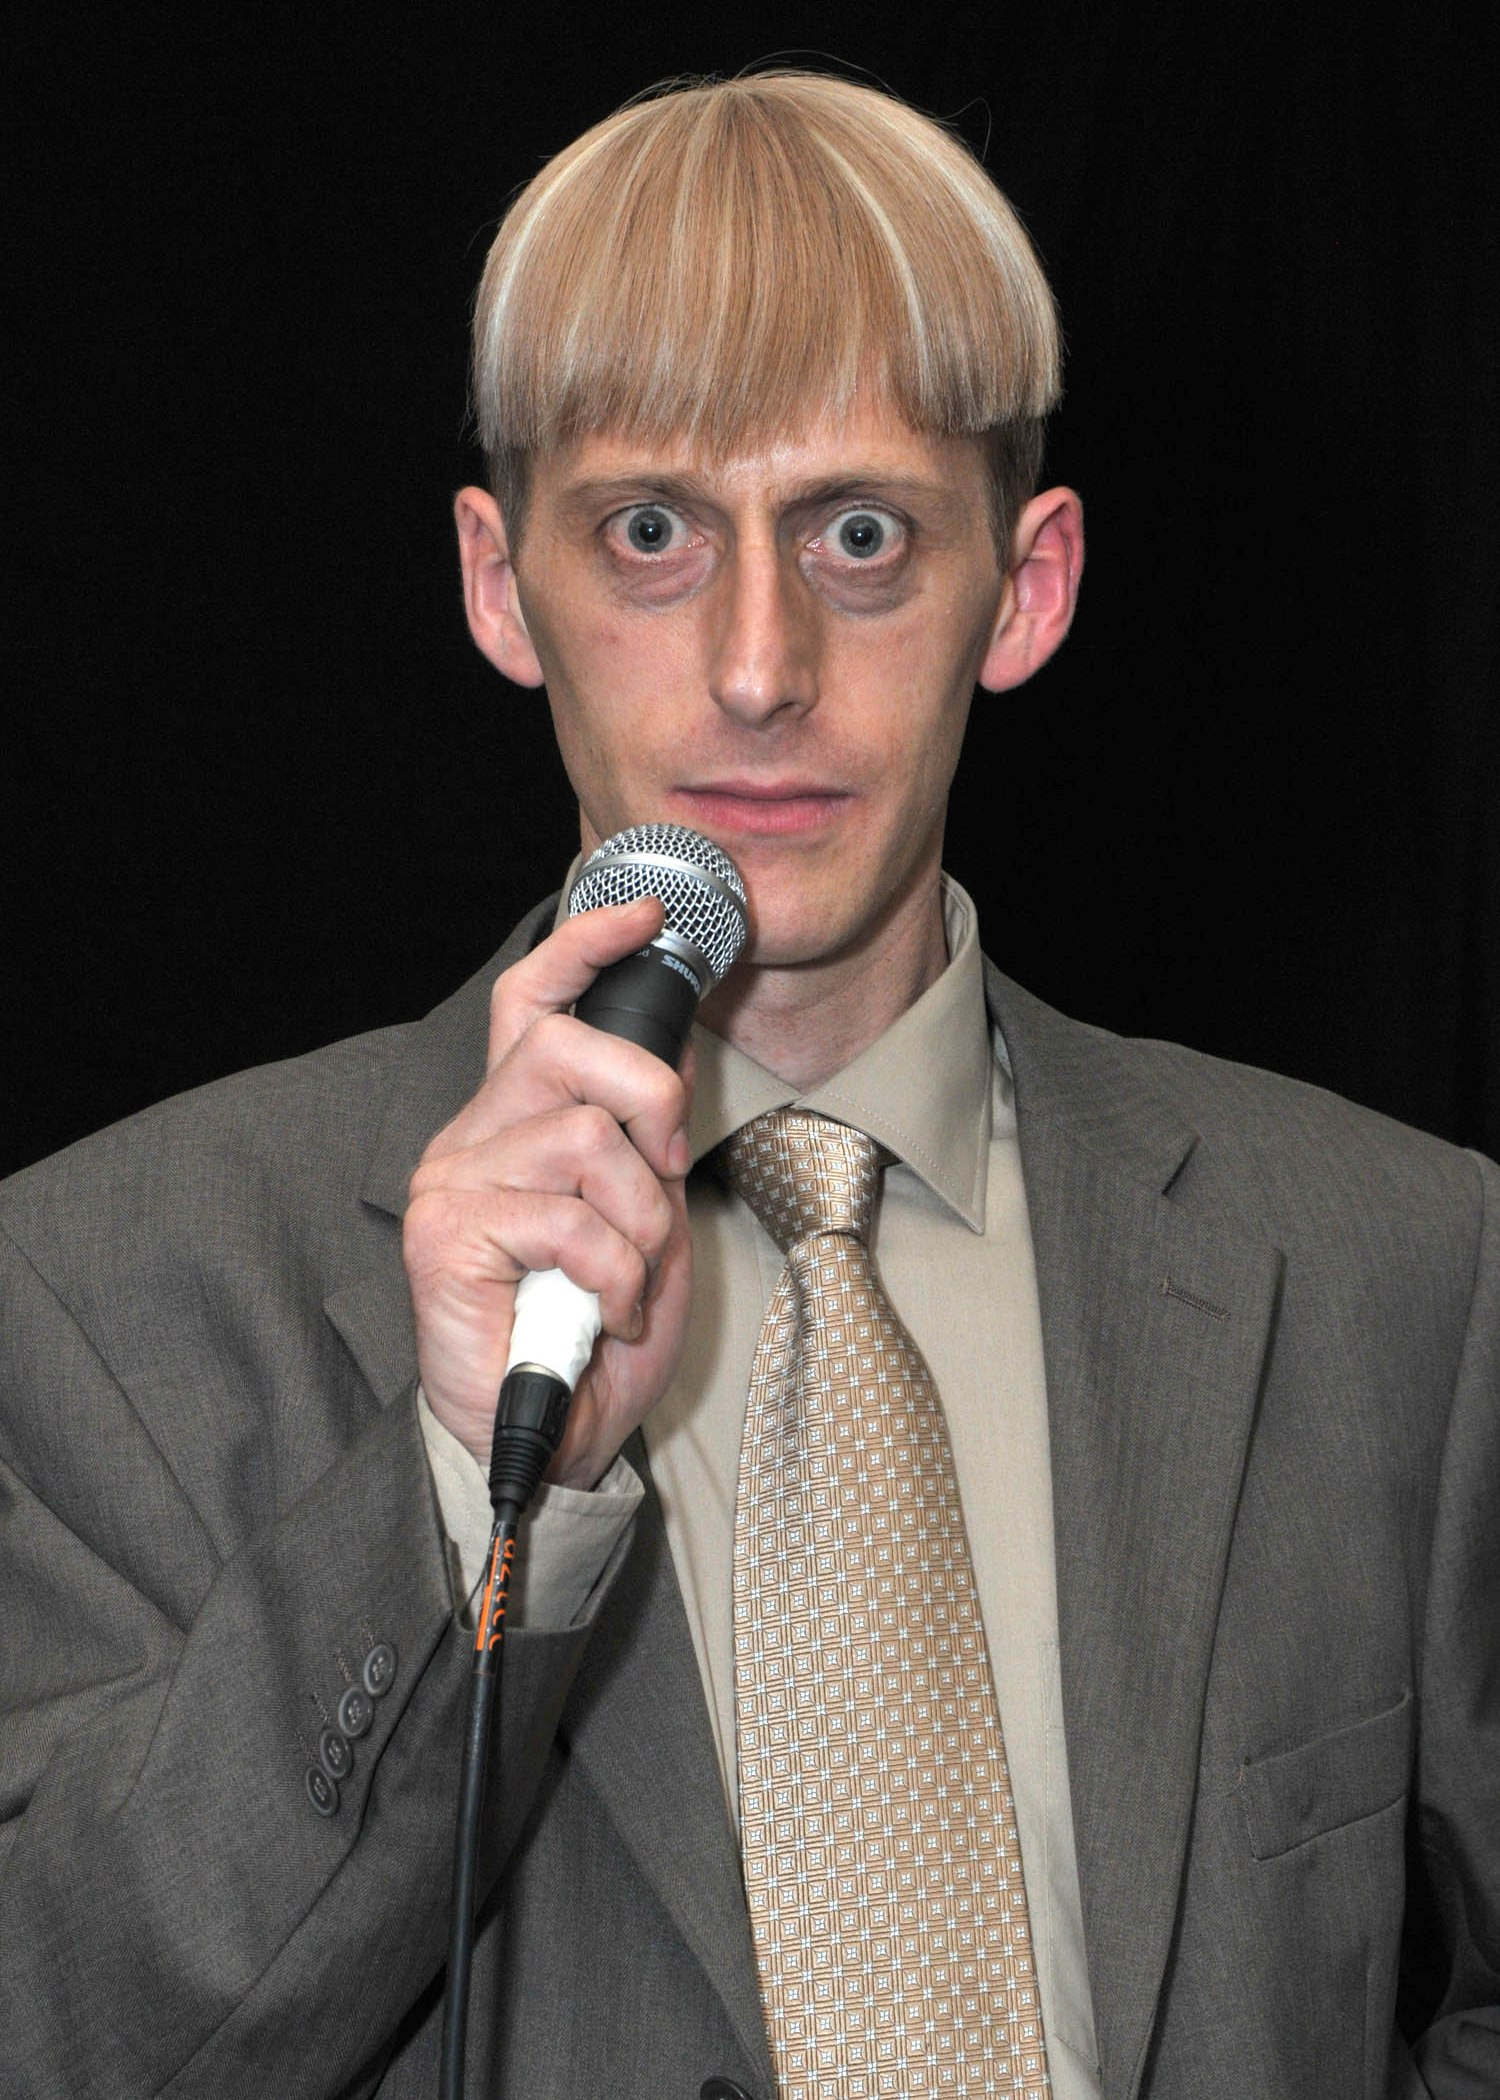 BrettSirrell is the only Gareth Keenan (Mackenzie Crook) lookalike in the UK. A professional Magician and entertainer for over 20 years, performing for countless corporate clients and events across the world. Fast thinking, quick witted and with a natural sense for great comedy that just cannot be taught - also TA trained to kill (only at weekends).